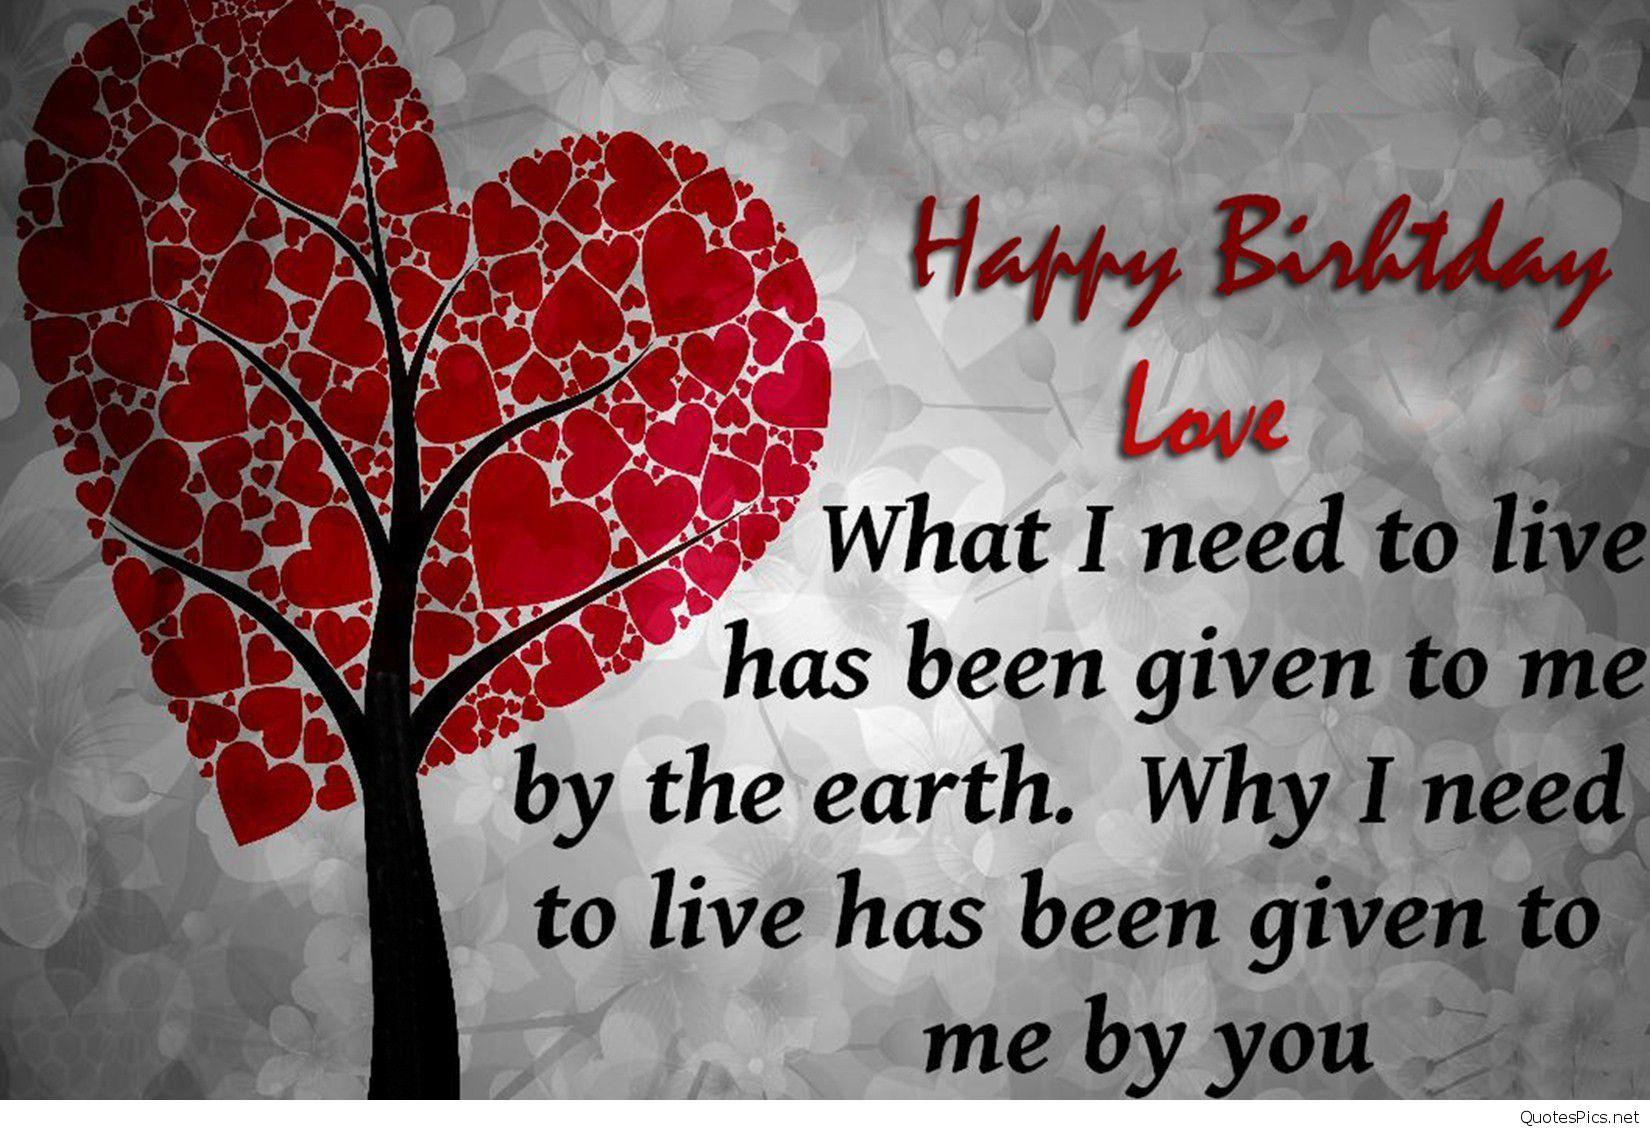 Happy Birthday My Love Quotes Hd Wallpapers Pics Beautiful Image